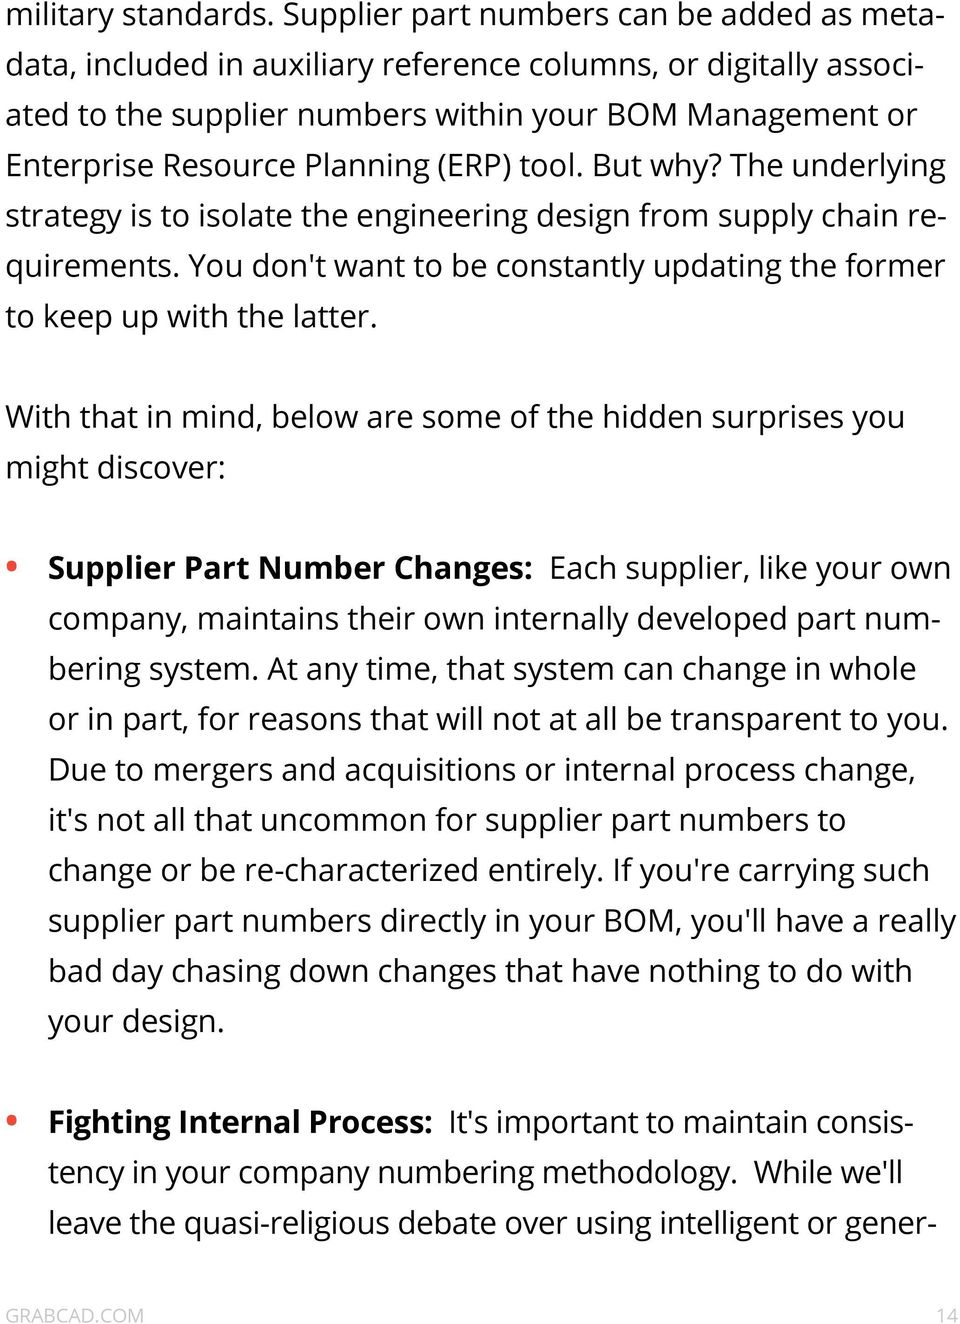 (ERP) tool. But why? The underlying strategy is to isolate the engineering design from supply chain requirements. You don't want to be constantly updating the former to keep up with the latter.